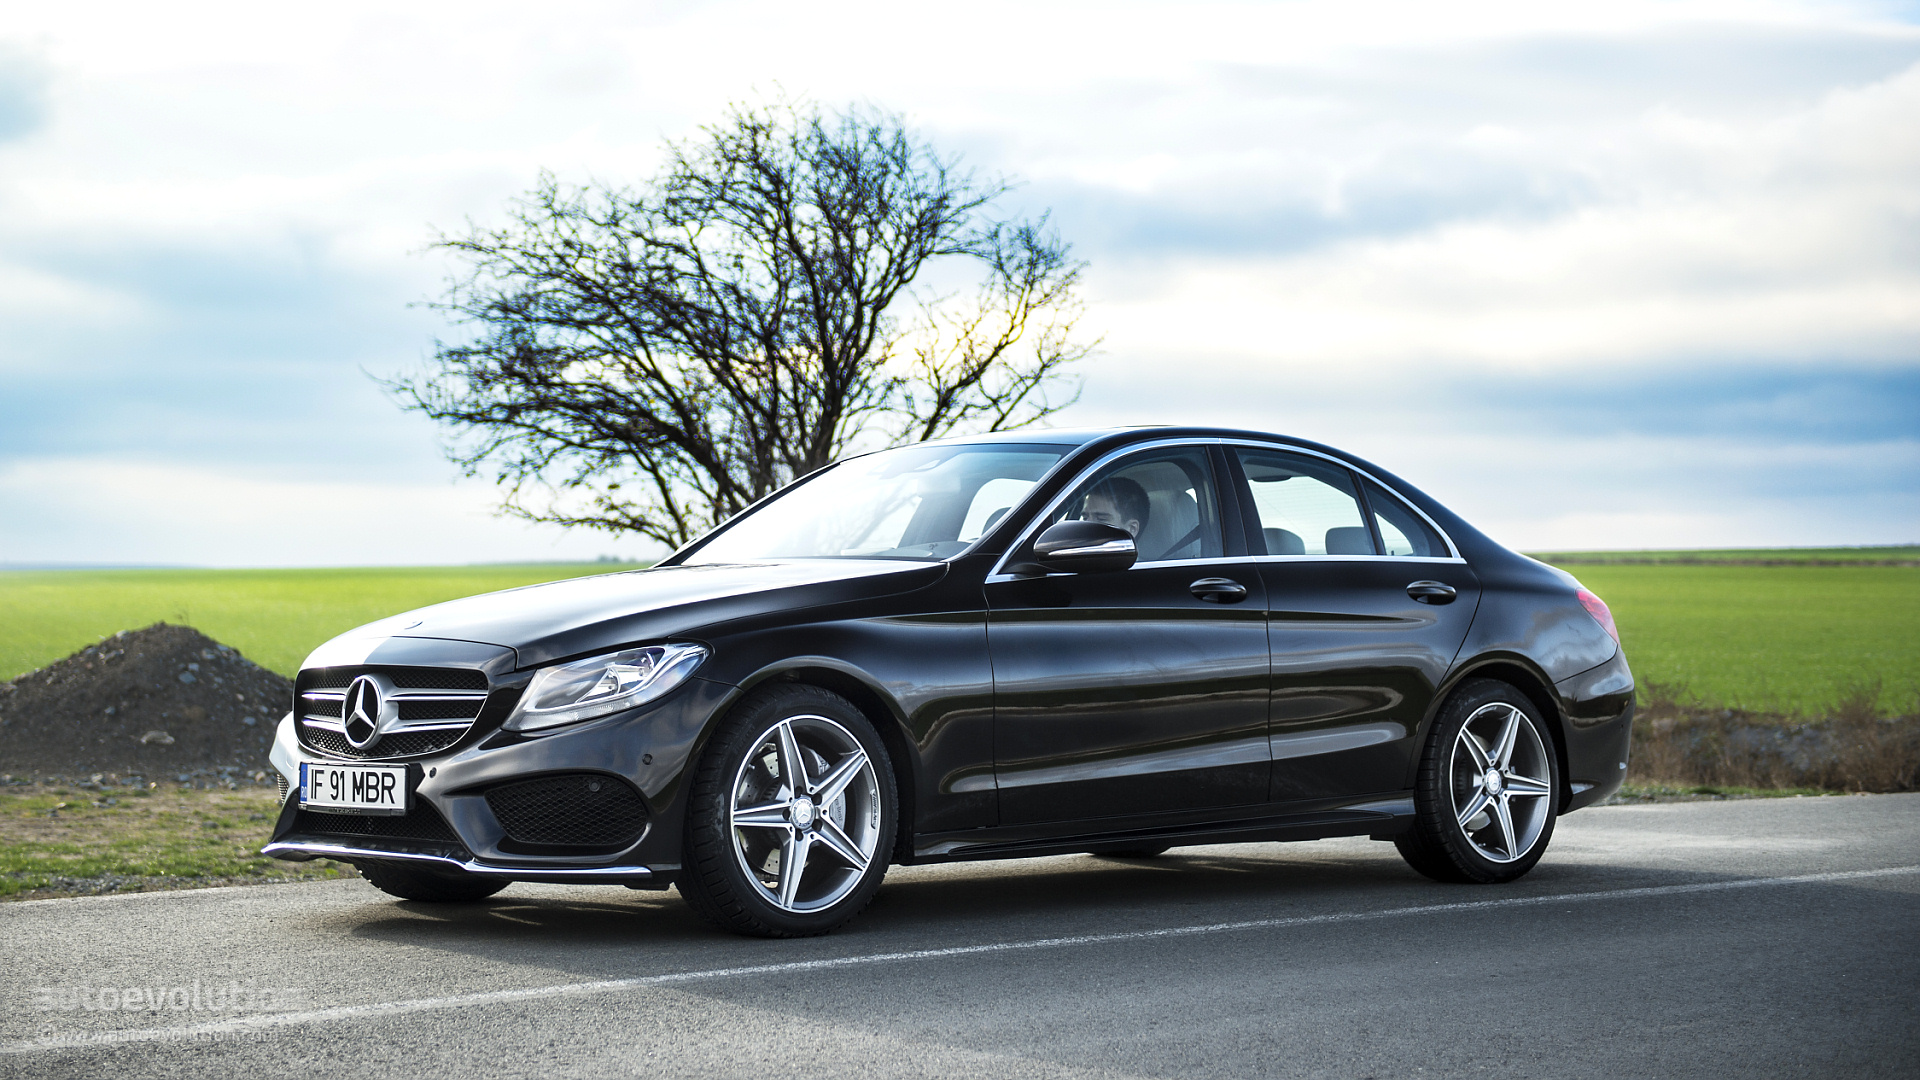 fahrzeugtechnik klasse carlsson en mercedes rear benz class products c